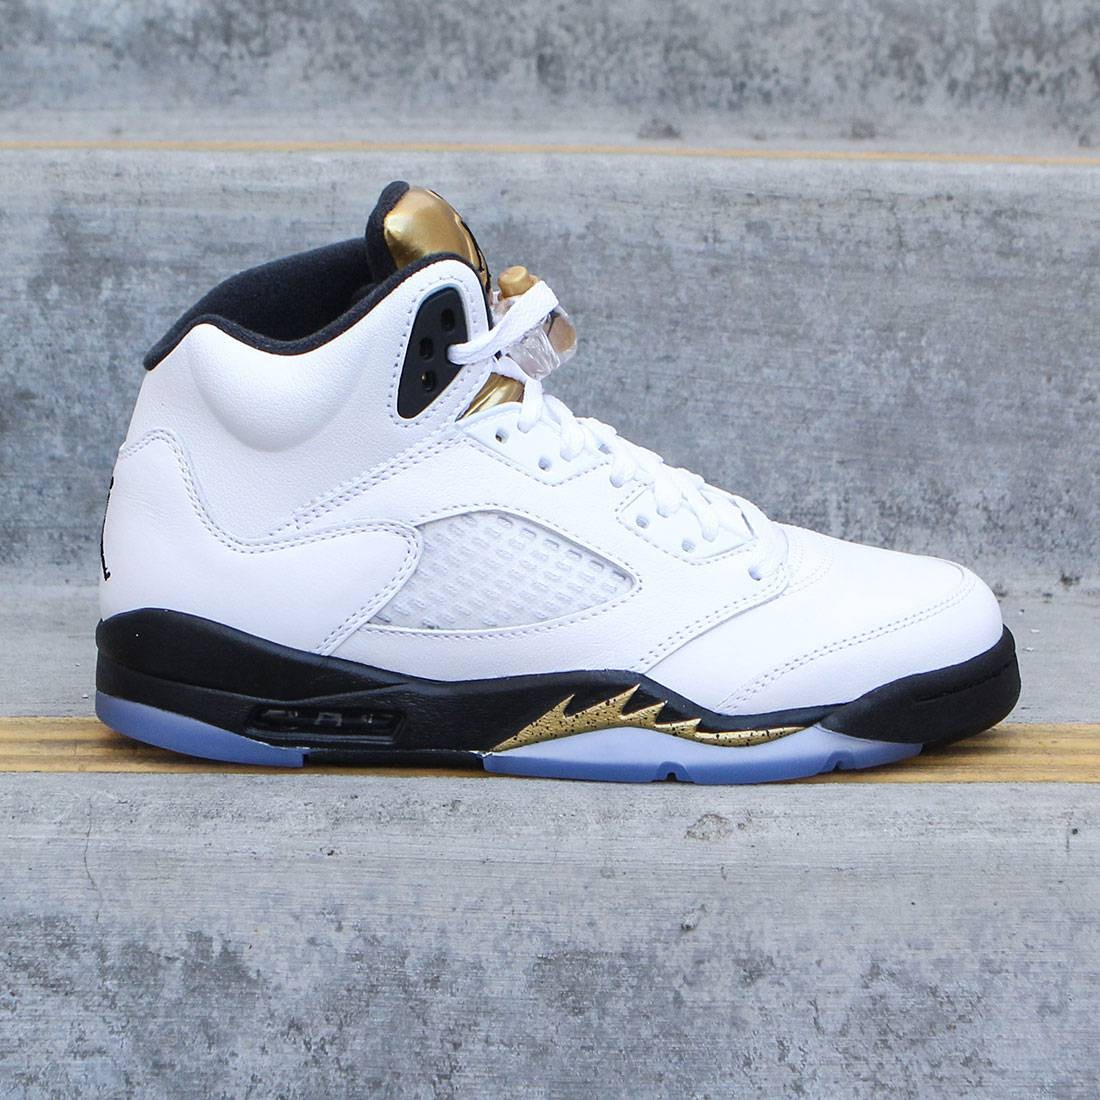 a148c201ee6 Jordan Big Kids Air Jordan 5 Retro (GS) (white / black-mtlc gold coin)